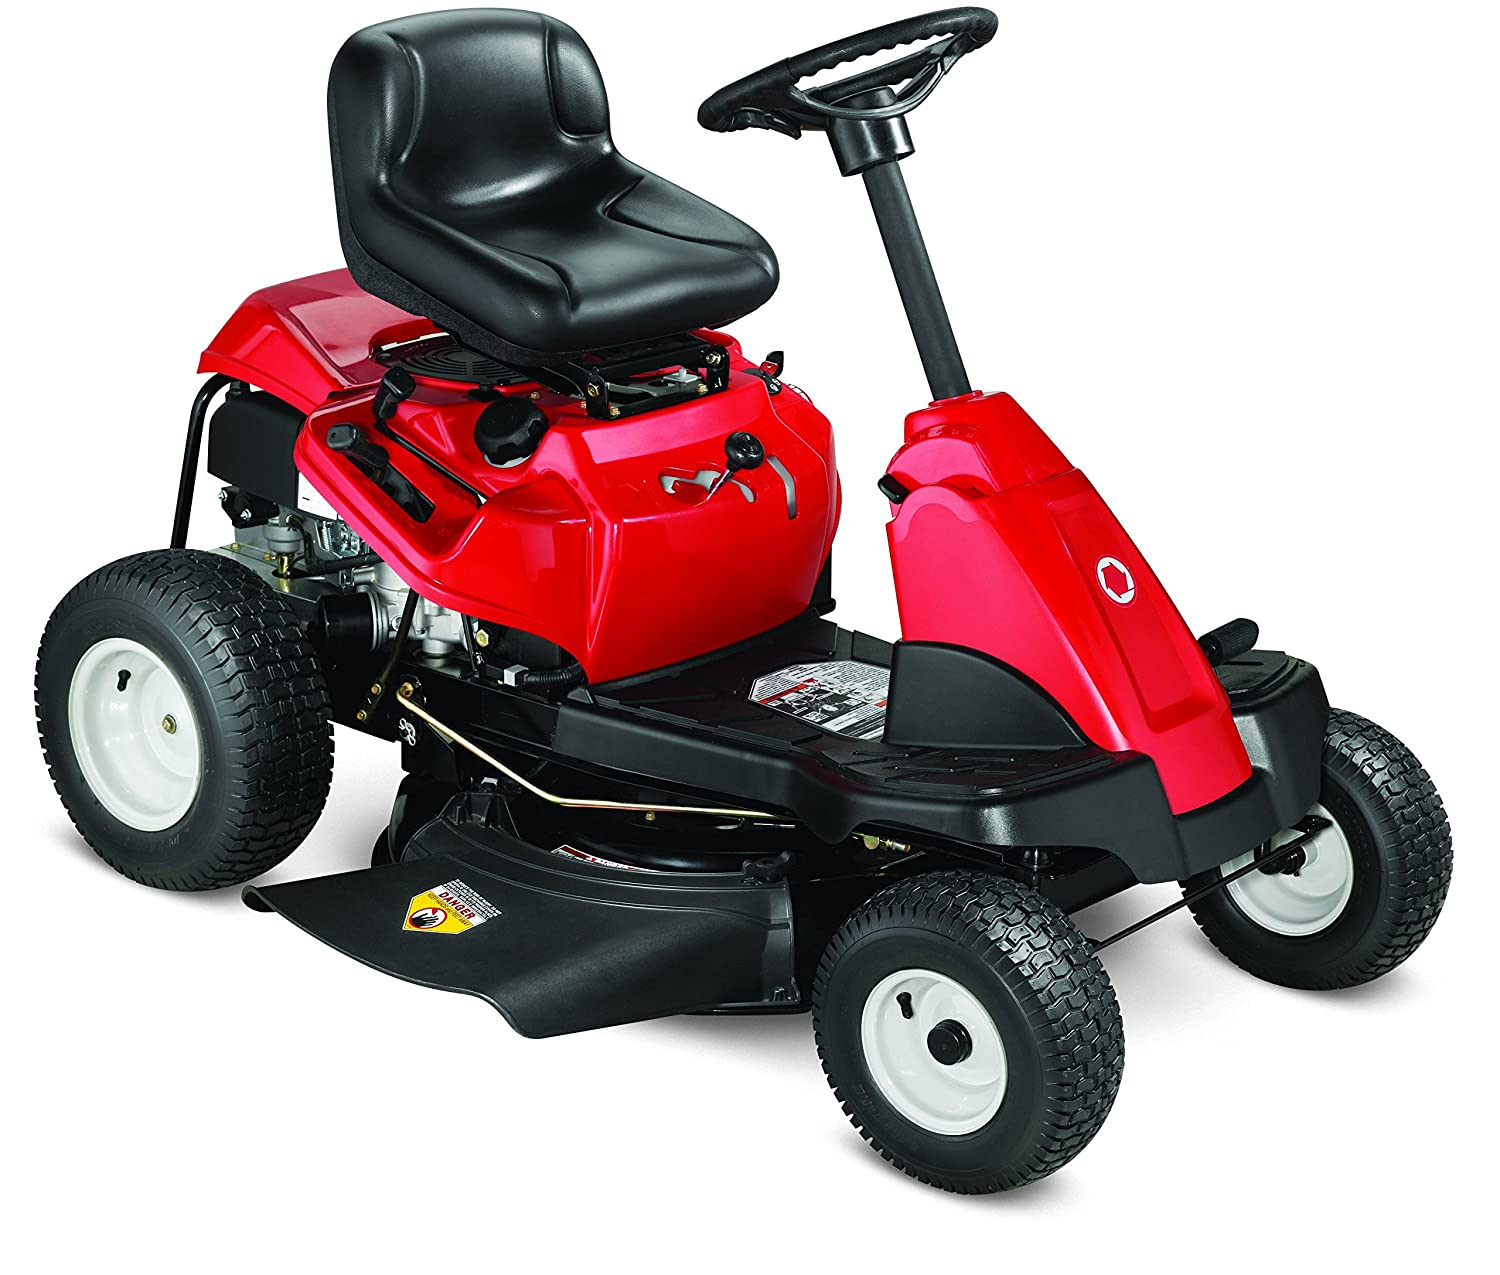 Troy-Bilt 420cc Premium Riding Lawn Mower